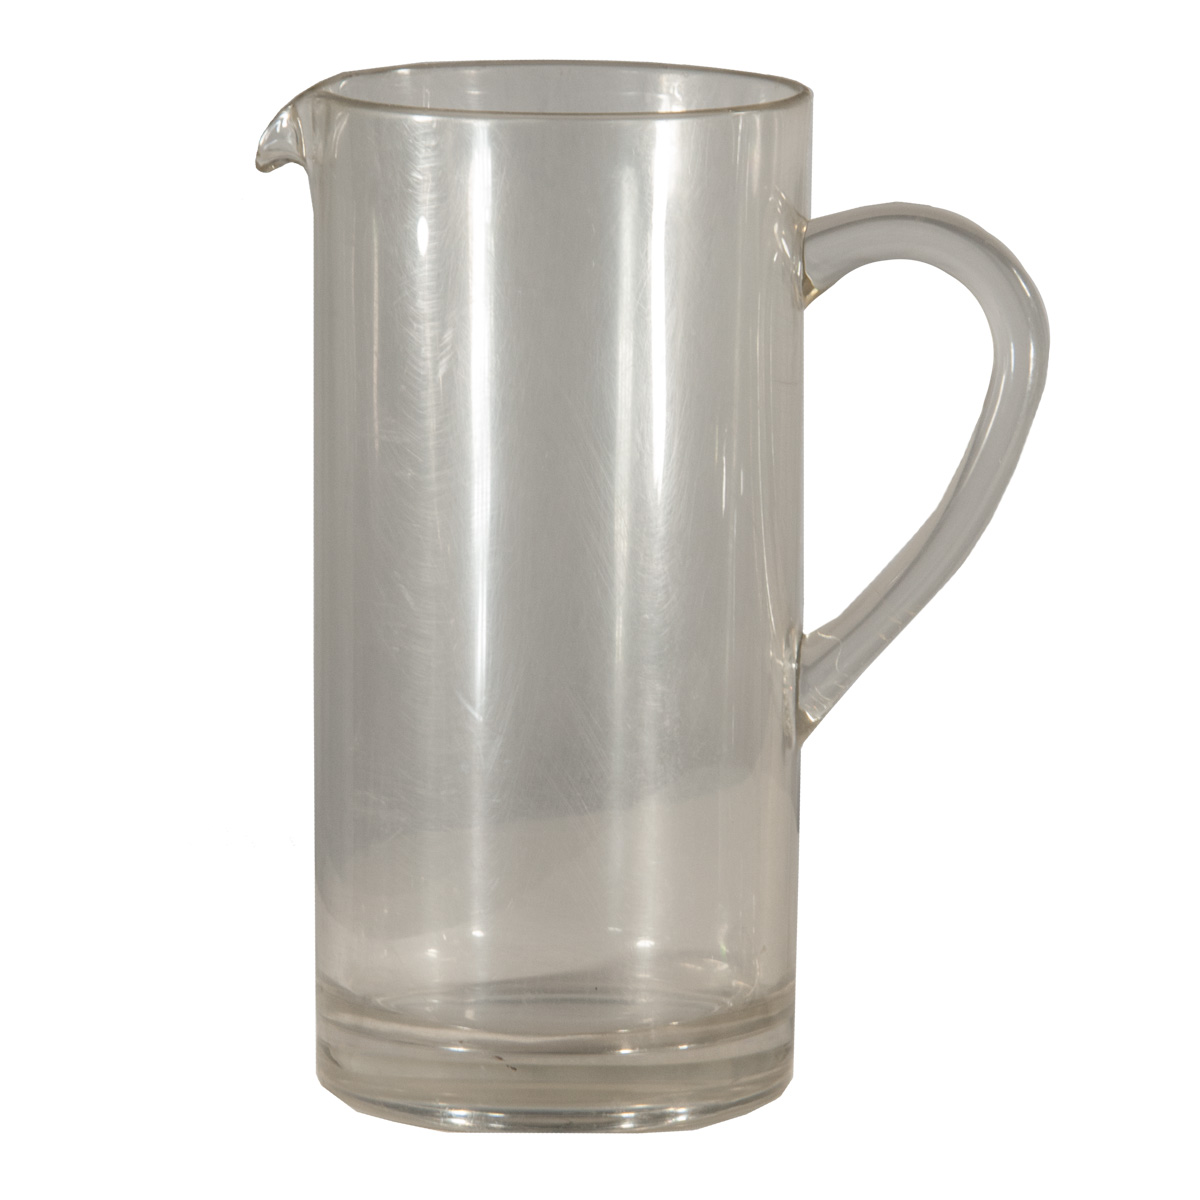 New Style Plastic Water Pitcher - Celebrations! Party Rentals